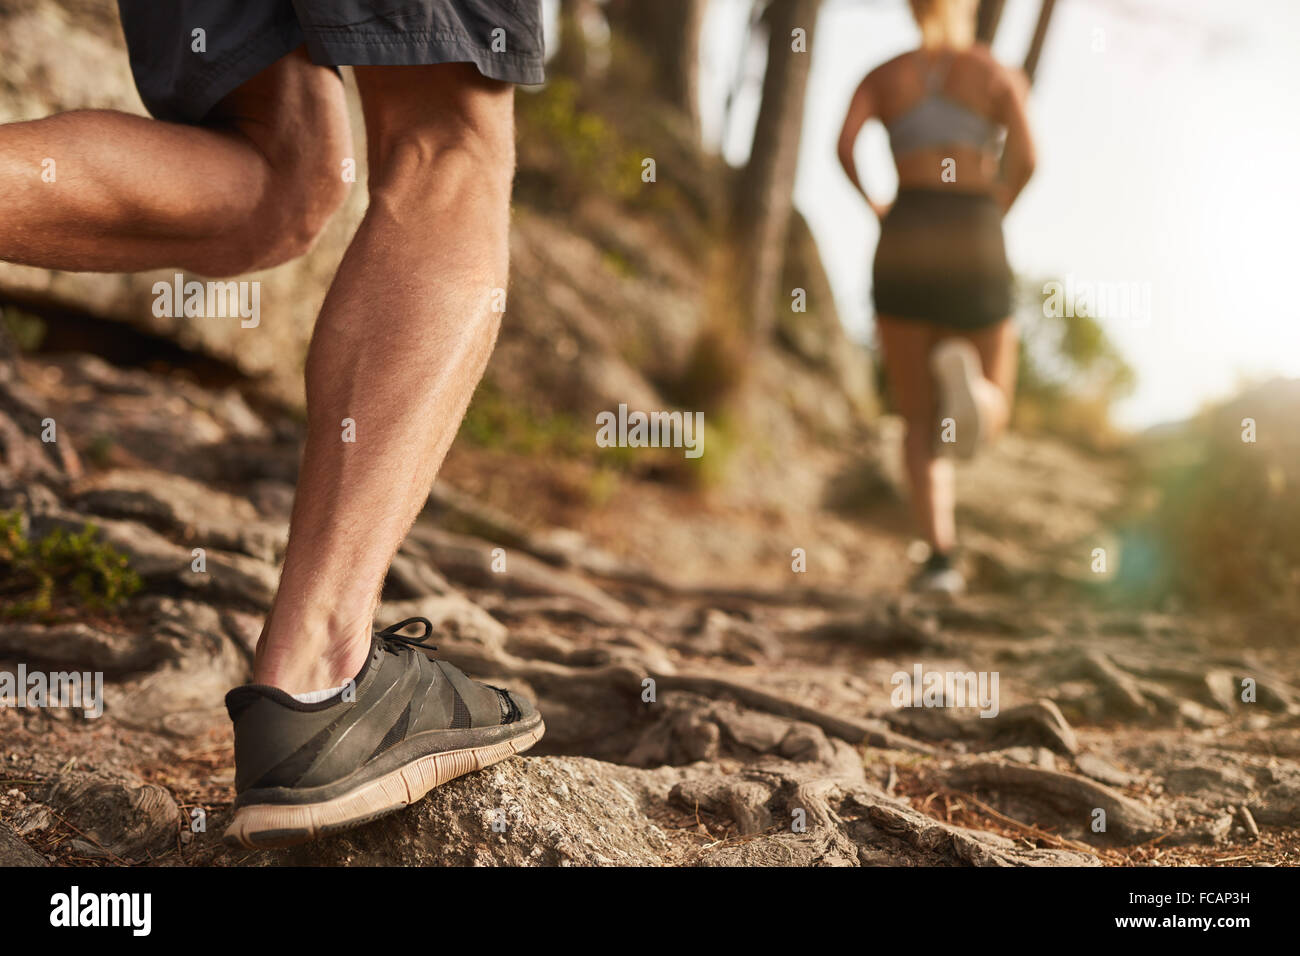 Closeup of male feet run through rocky terrain. Cross country running with focus on runner's legs. - Stock Image